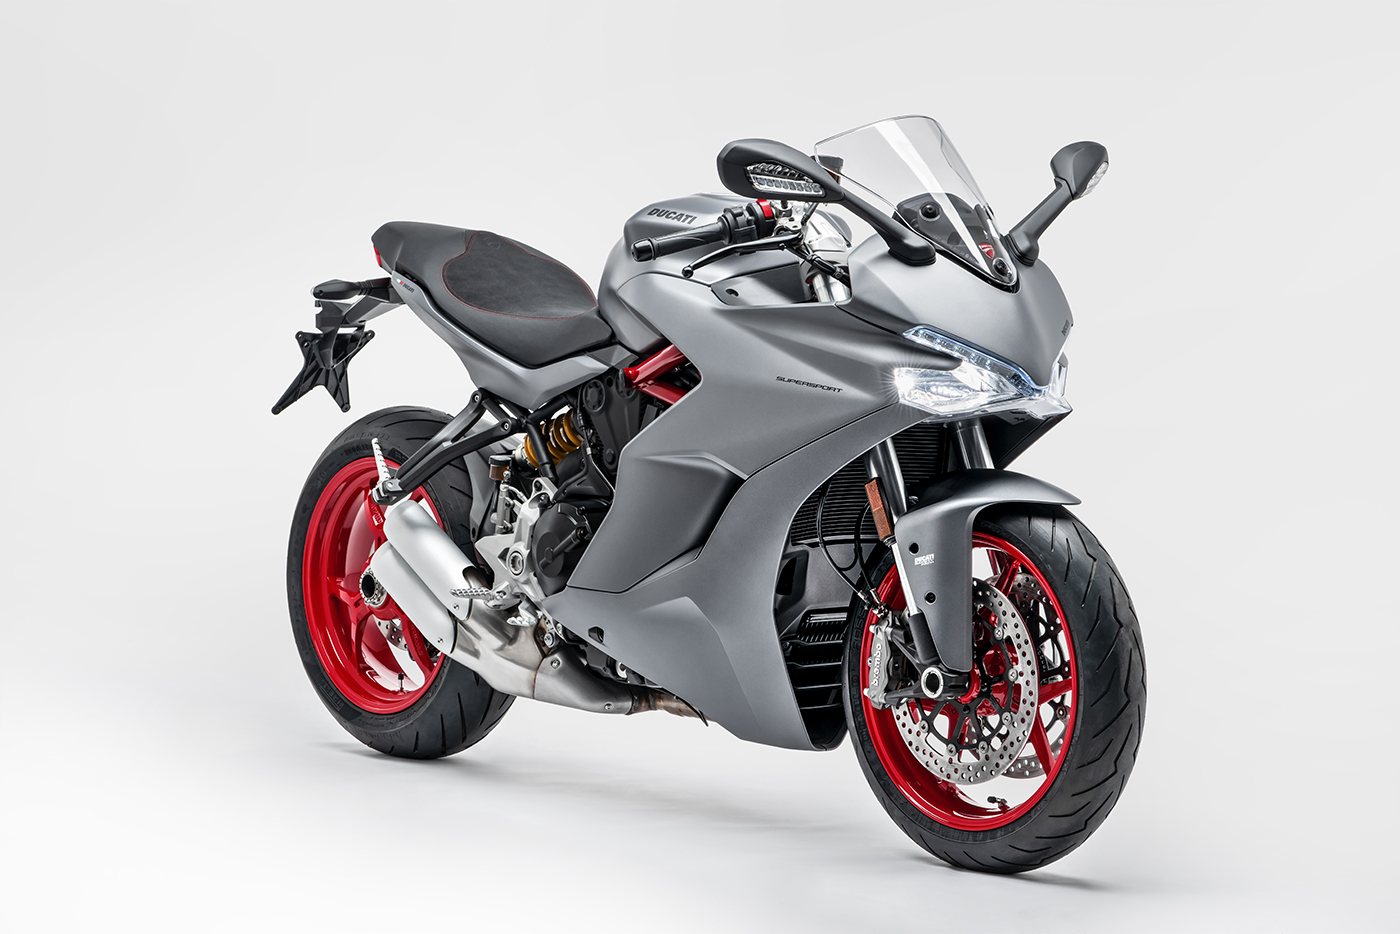 2018-ducati-supersport-titanium-grey-8.jpg